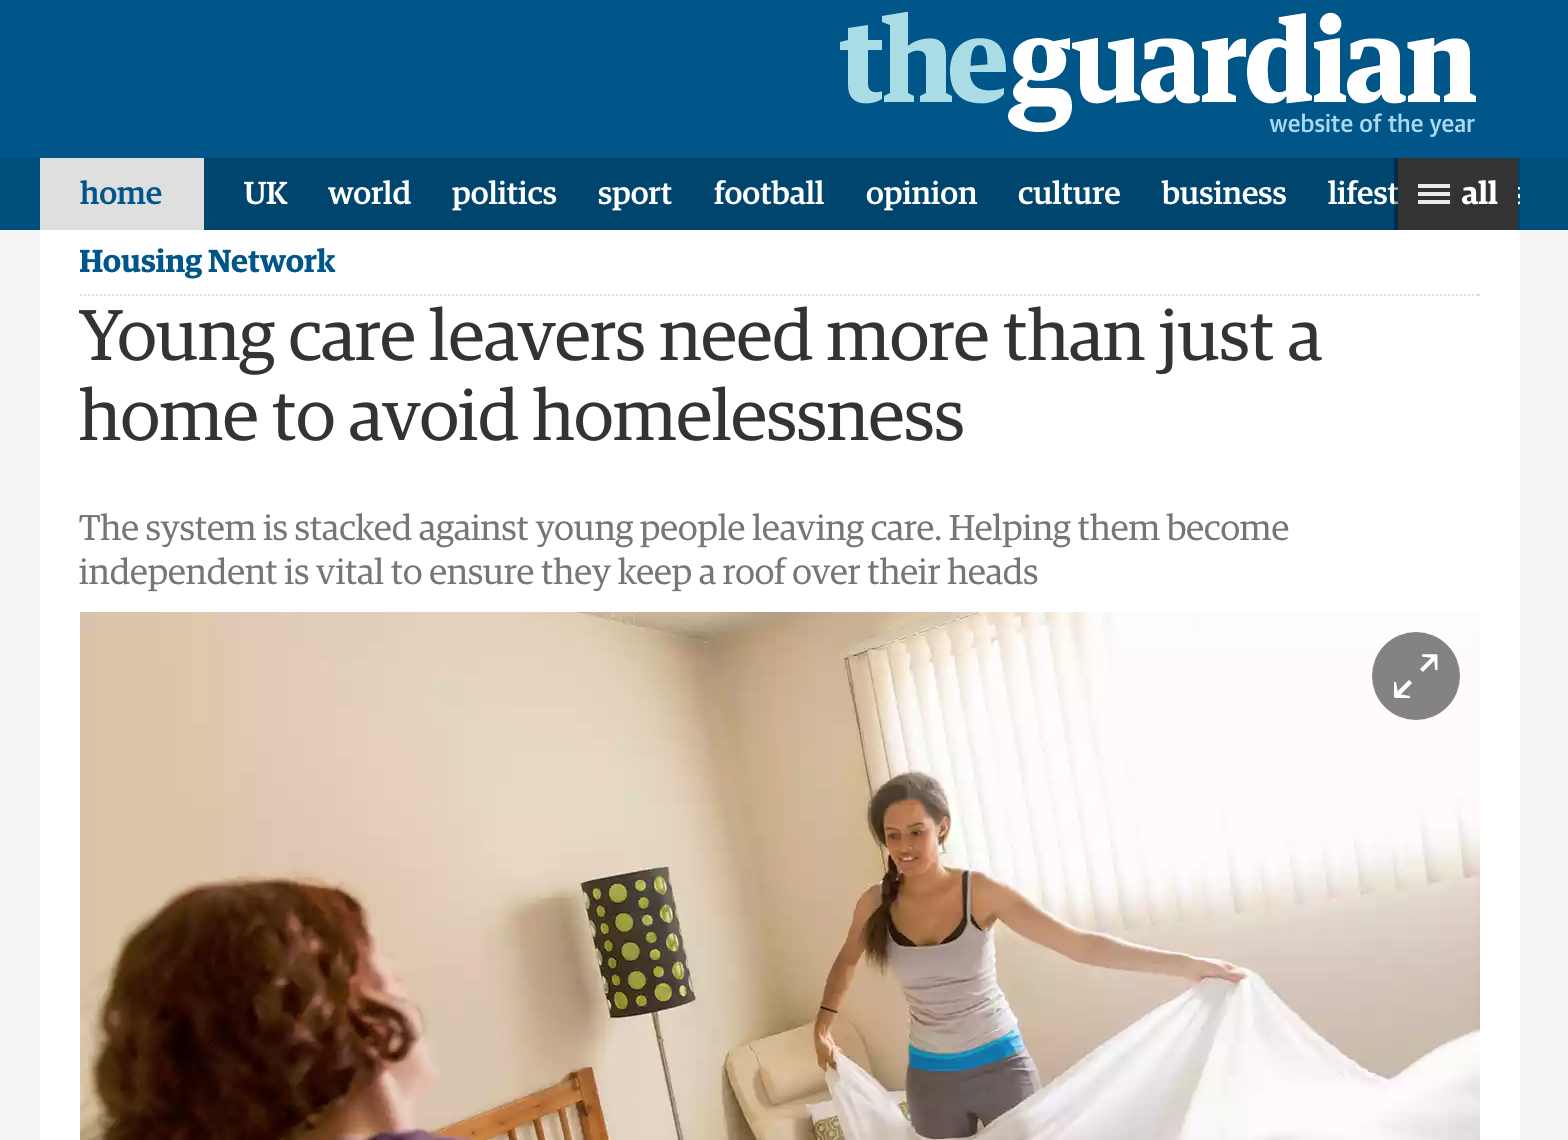 young people leaving the care system The government has made a commitment to improve support for young people leaving foster or residential care in england but the system is not working effectively.